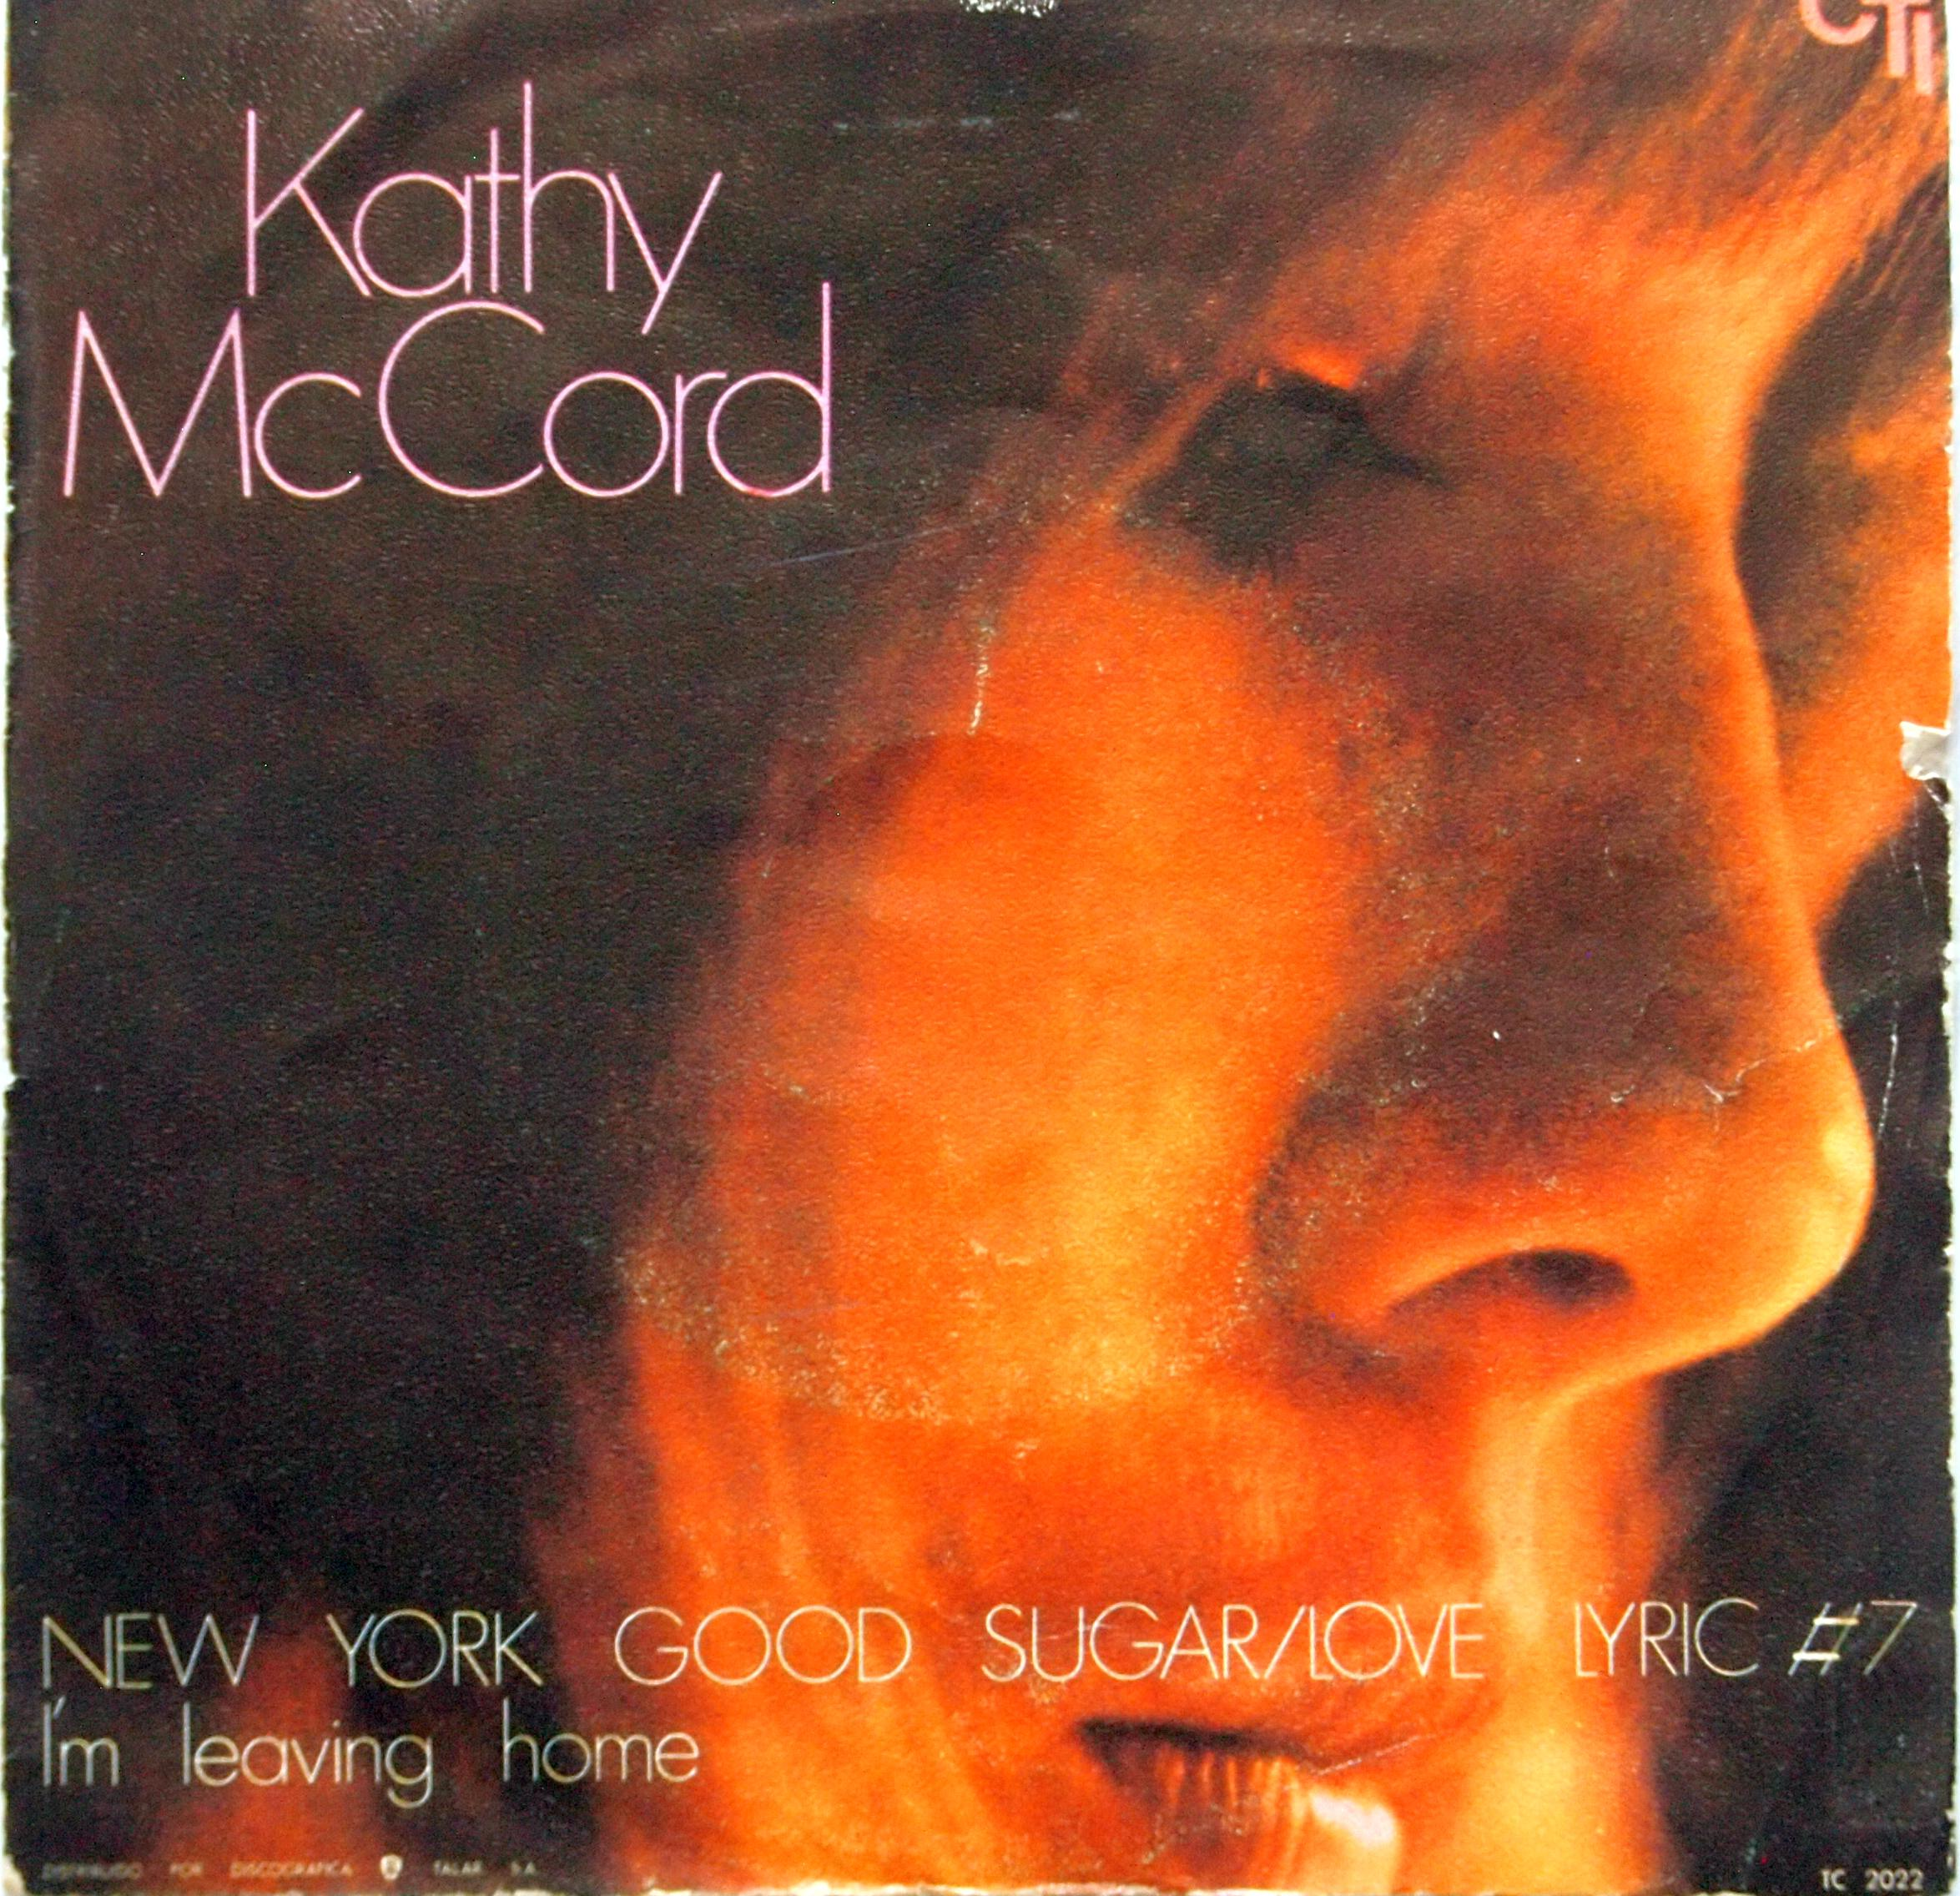 Picture cover of Spanish release of Kathy McCord single